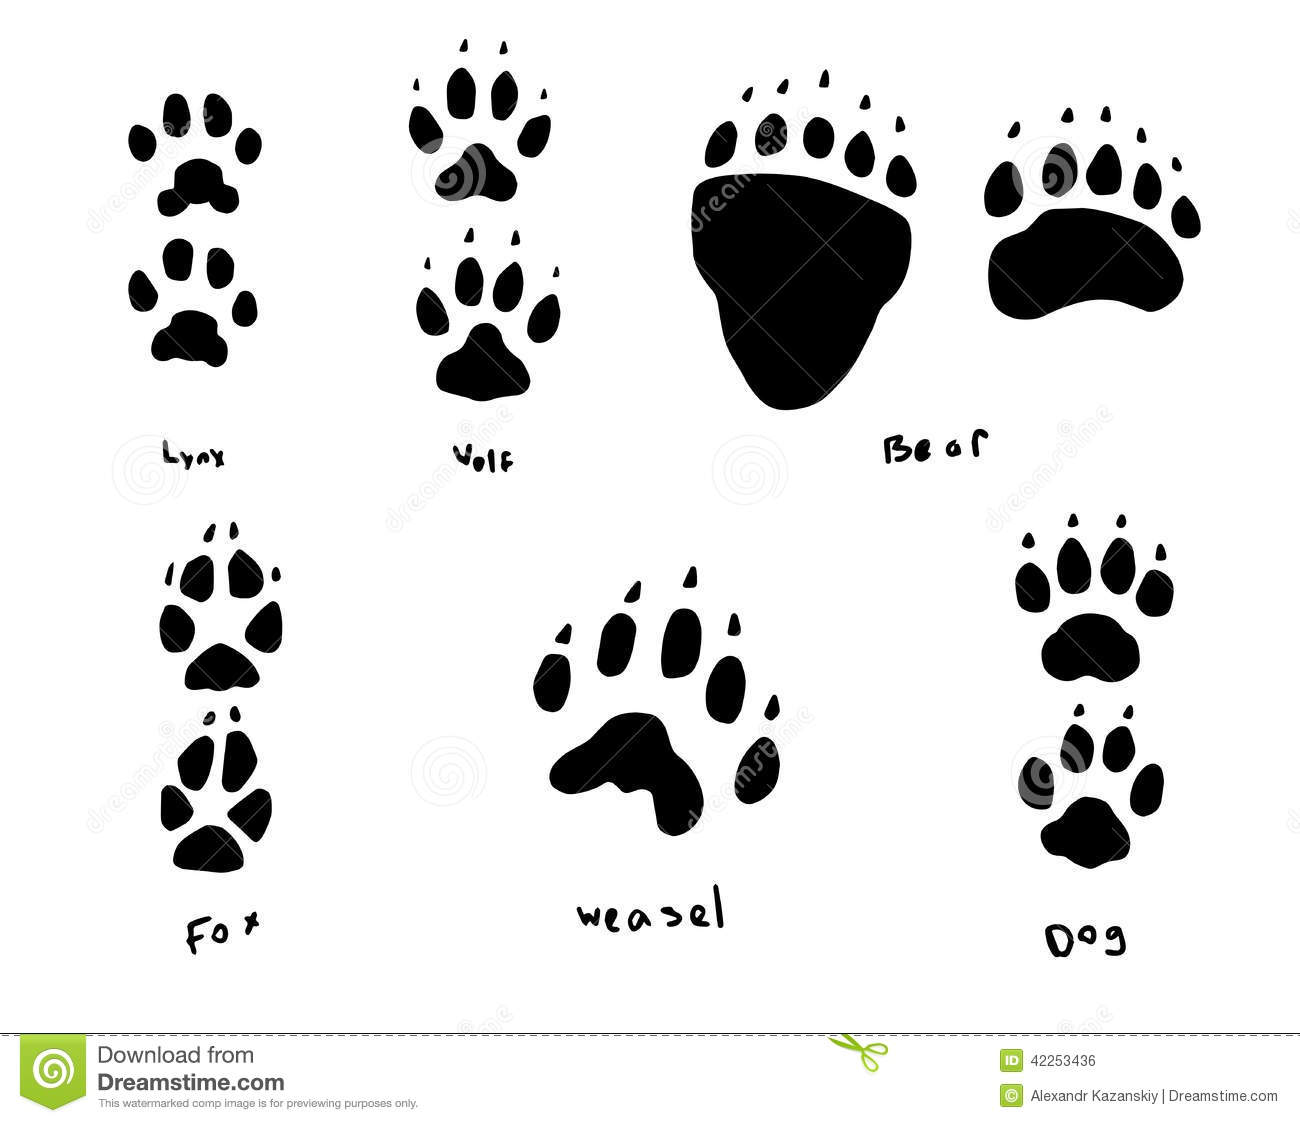 This is a set of animal footprintsThis is an illustration of pixelated ... African Lion Footprints